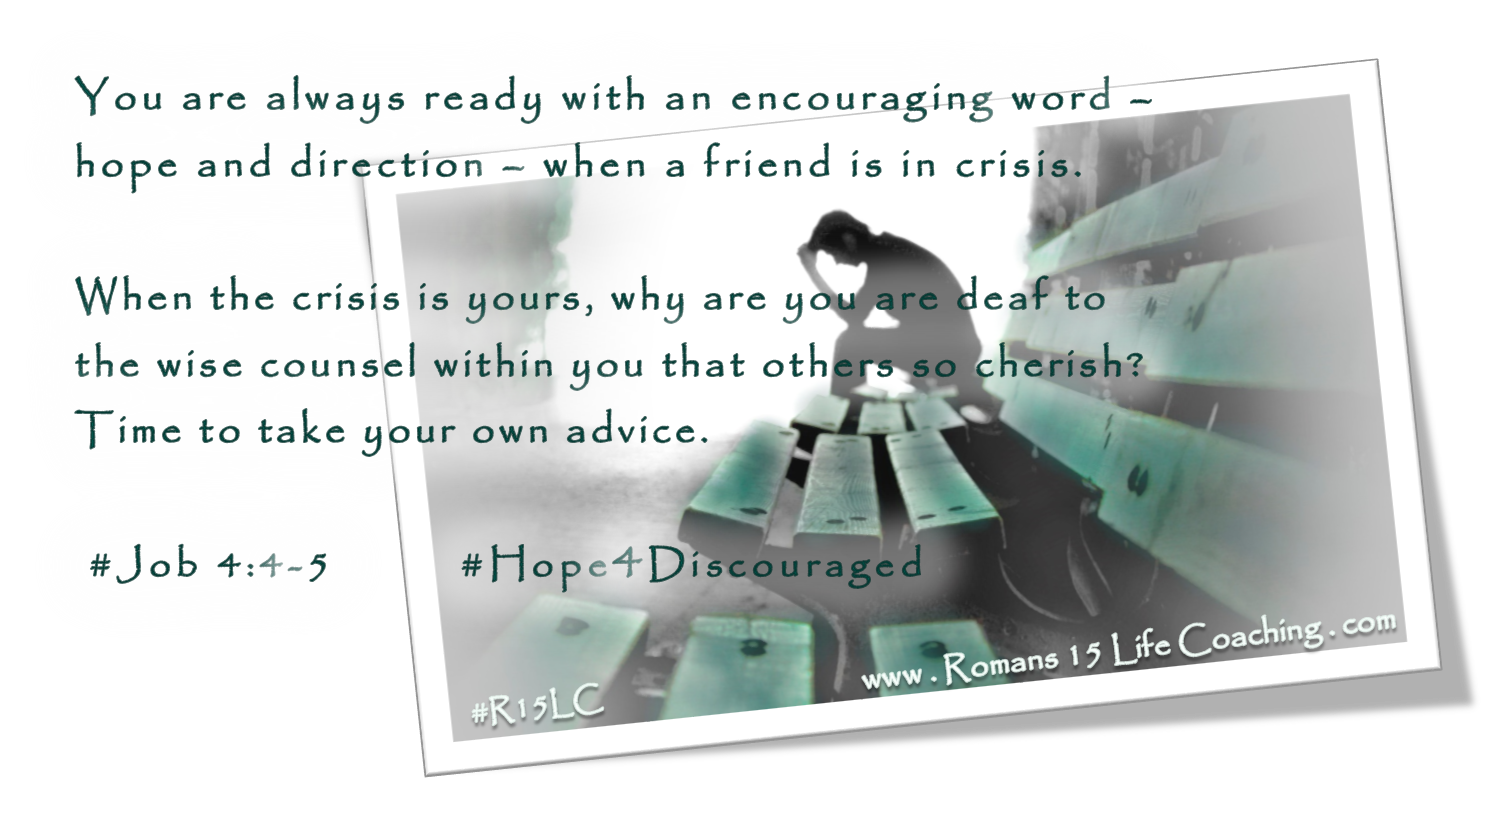 Romans 15 Life Coaching: A Week of Hope for the Discouraged - Job 4